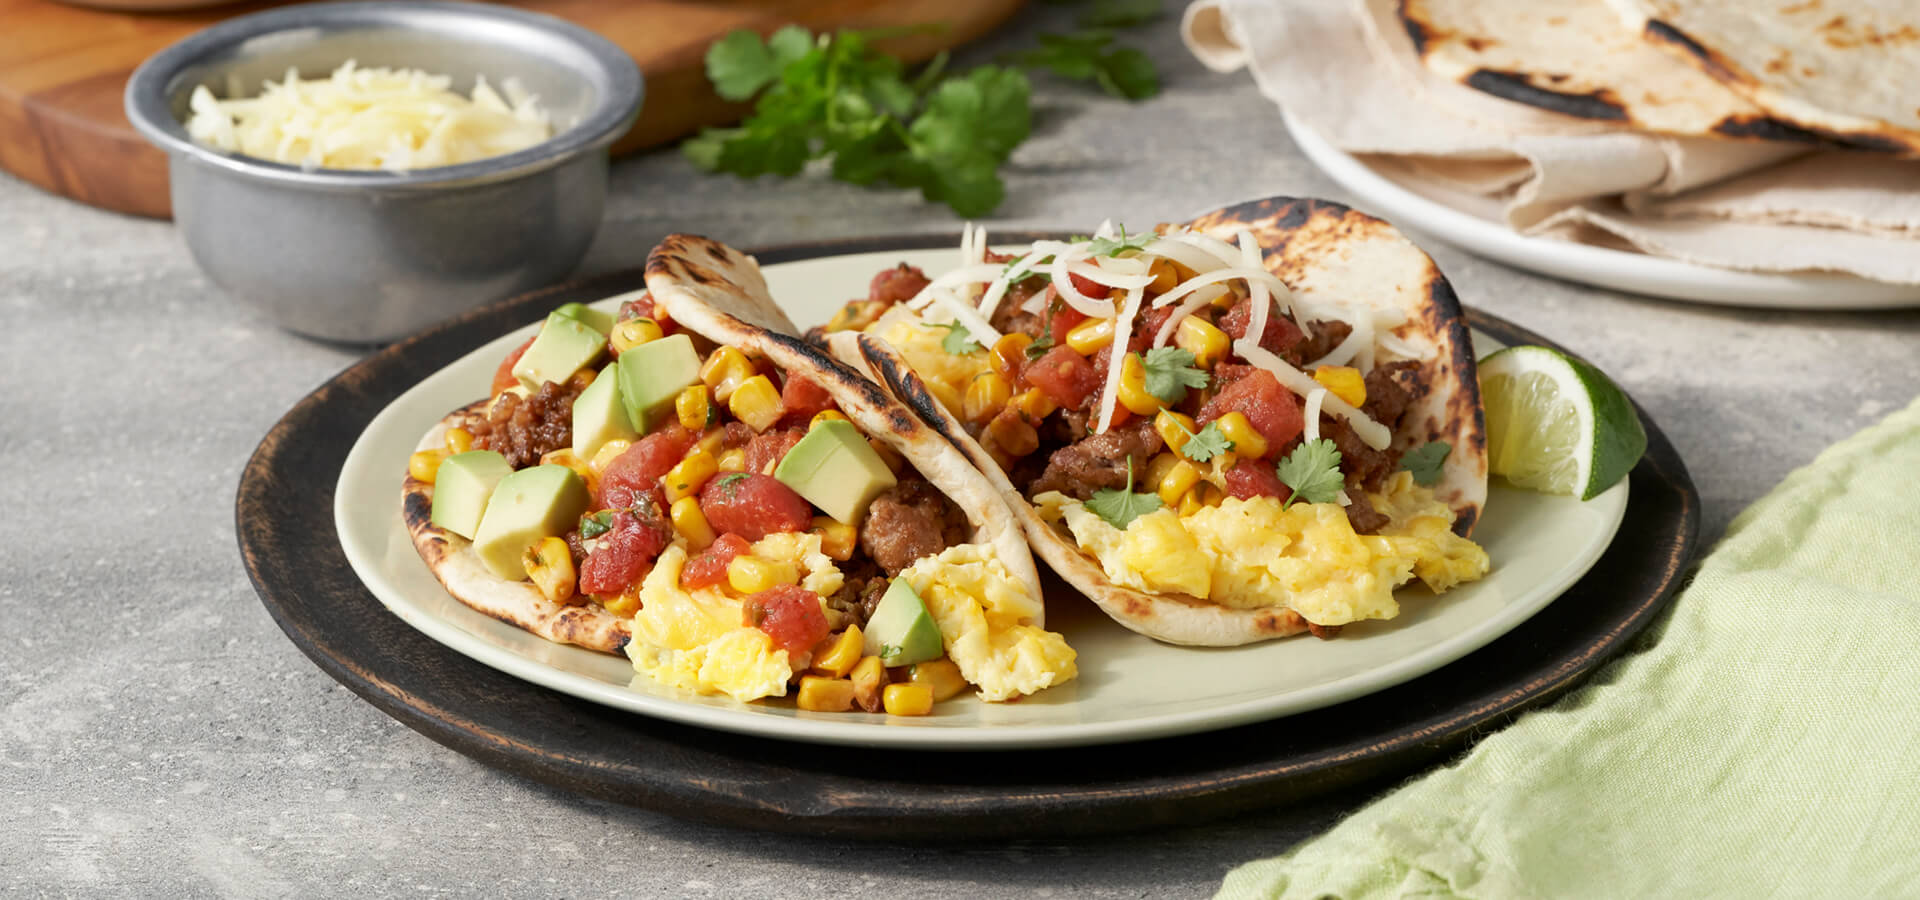 Breakfast Tacos with Roasted Corn Salsa